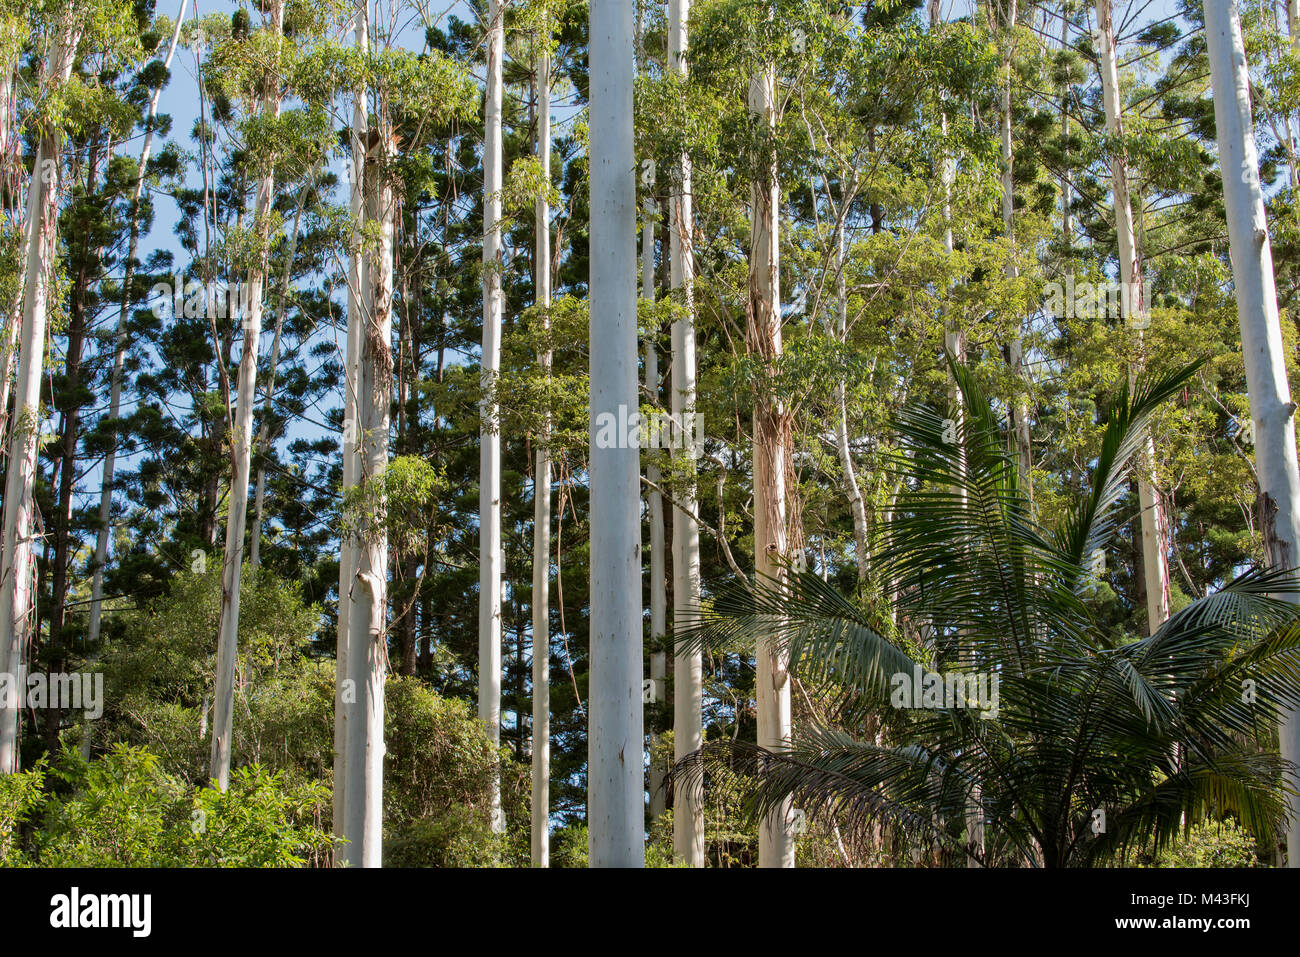 Bush Eucalypt Eucalyptus Stock Photos & Bush Eucalypt